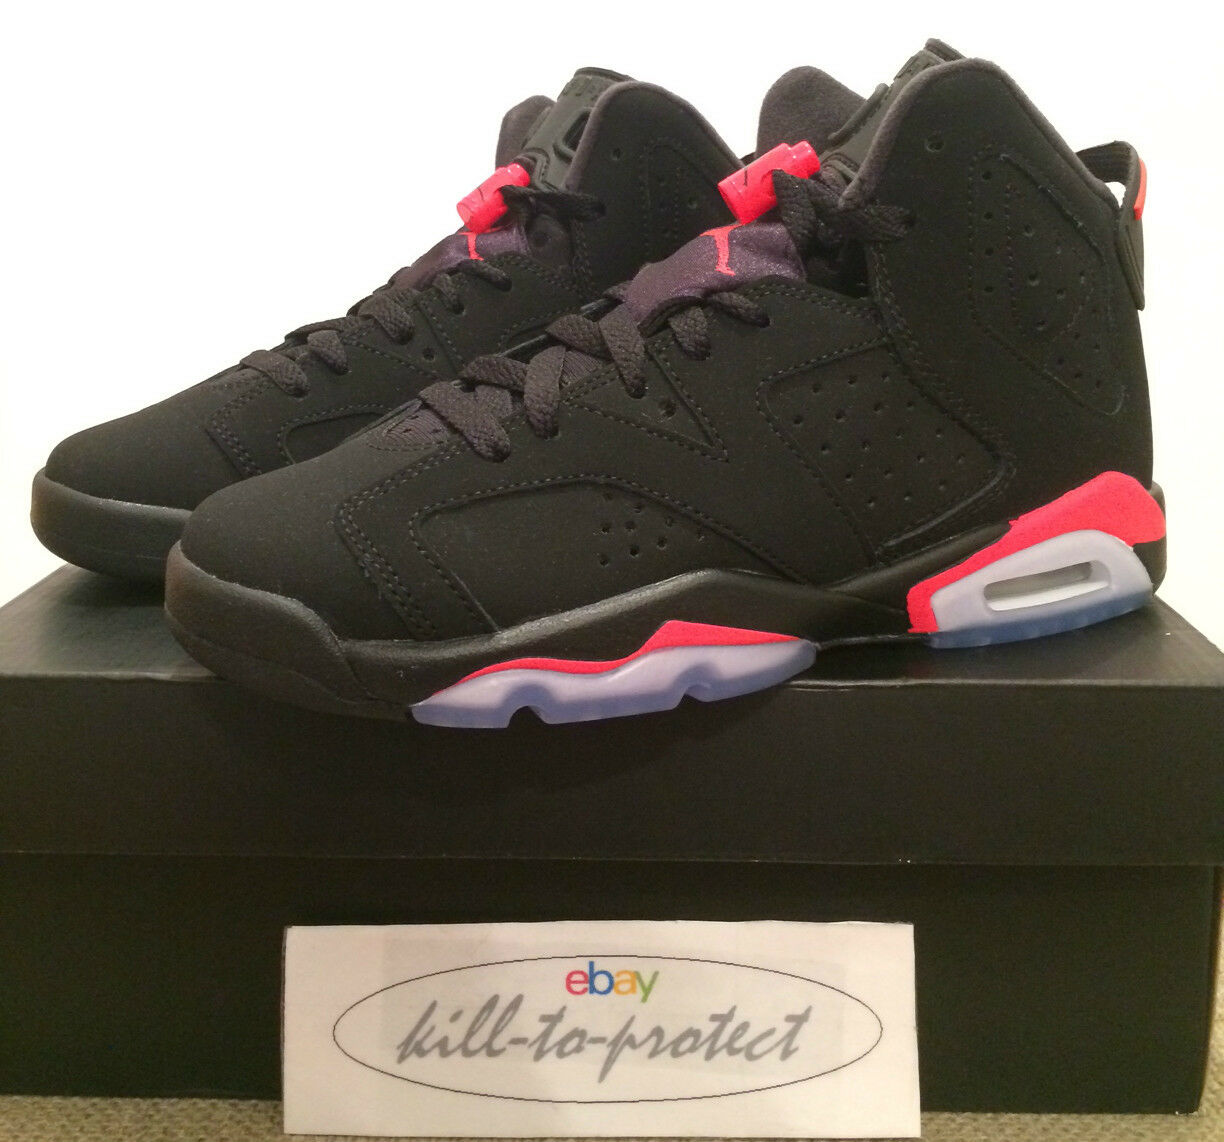 NIKE AIR JORDAN 6 Noir INFRARouge GS BG Sz 4.5Y 5Y 5.5Y 6Y KIDS 384665-023 2018